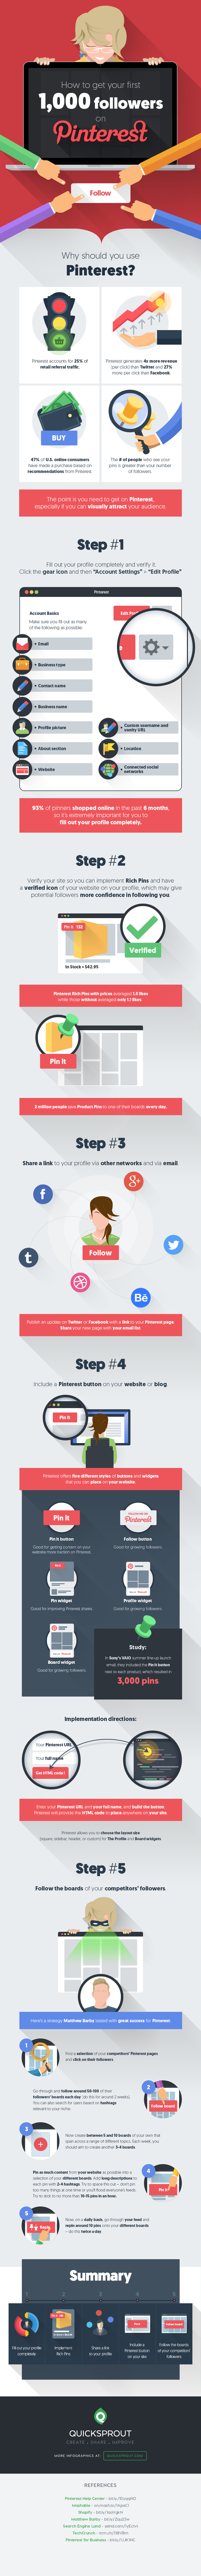 How to Get Your First 1,000 Followers on Pinterest #infogrpahic